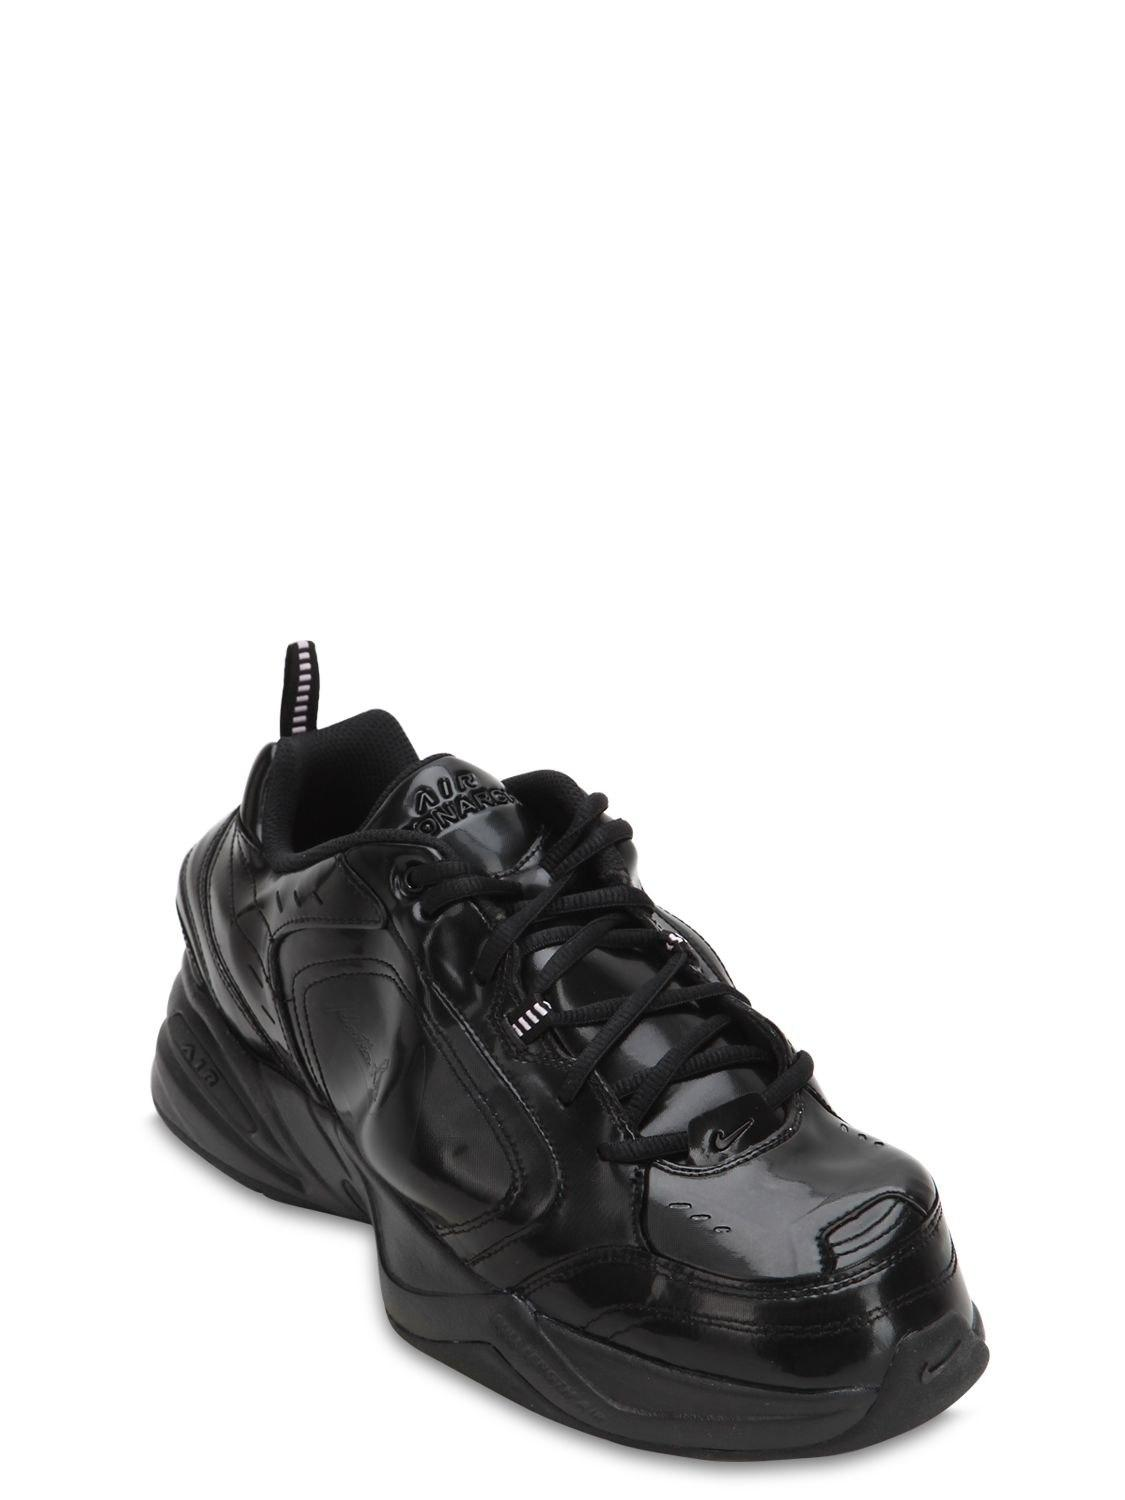 be01c74d0fe Nike - Black Martine Rose Air Monarch Iv Sneakers for Men - Lyst. View  fullscreen